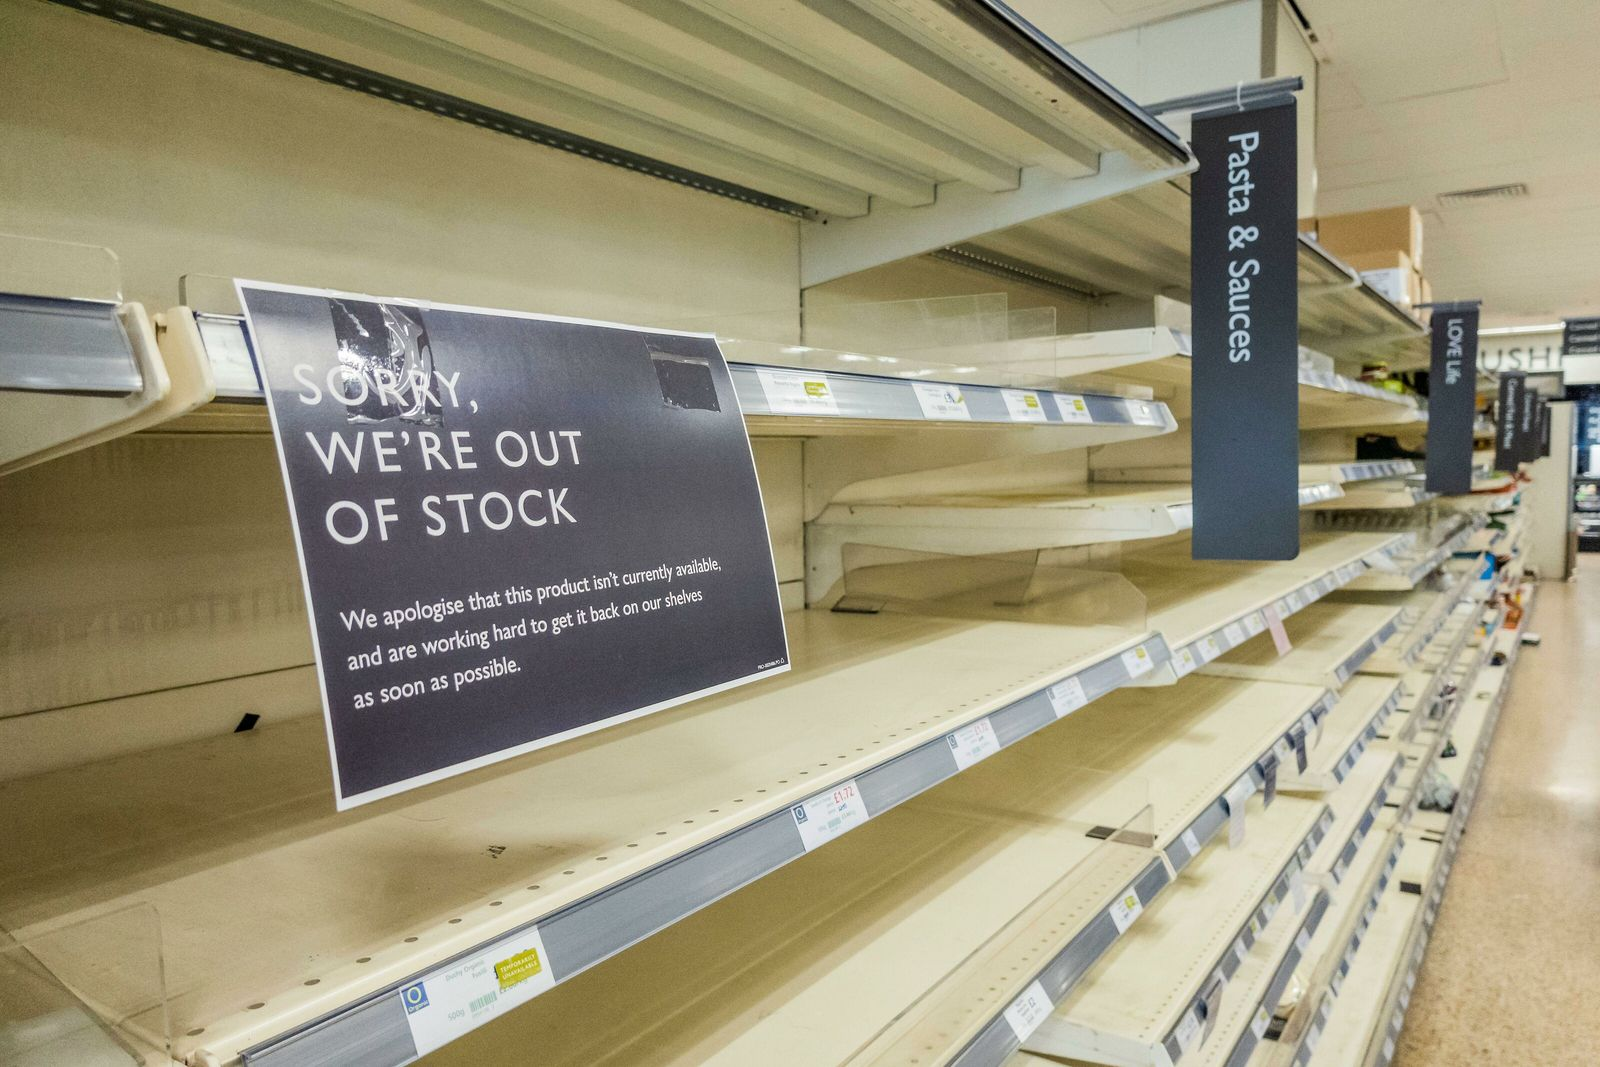 London, March 2020: During the first lockdown in the UK in spring, many supermarkets suffered a ...